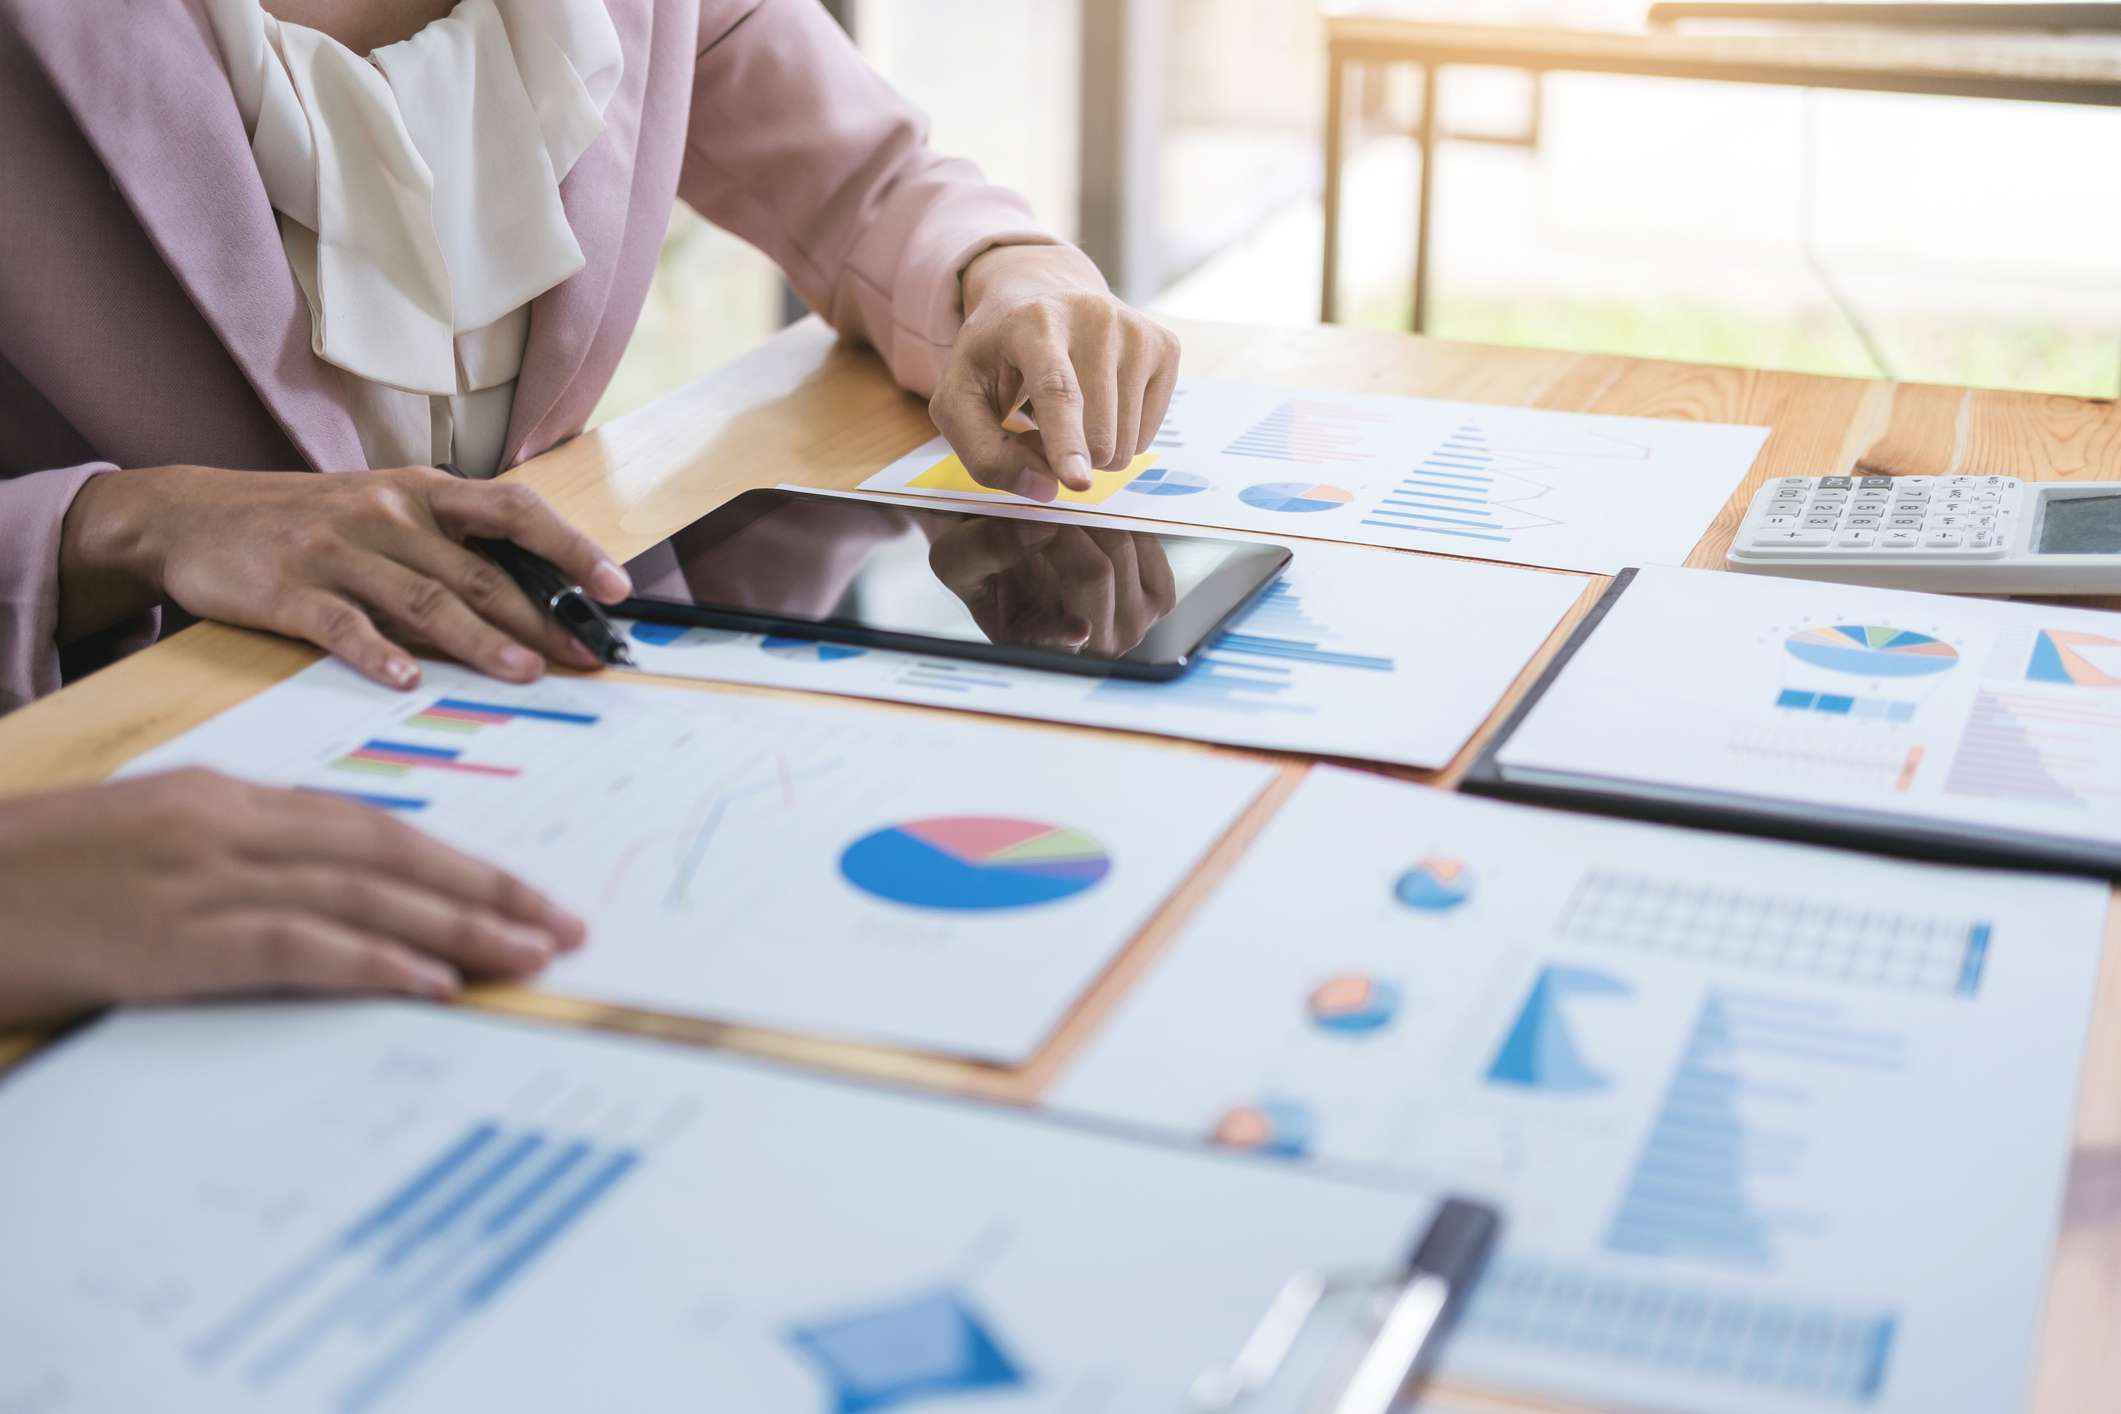 Is it better to use fundamental analysis, technical analysis, or  quantitative analysis to evaluate long-term investments?